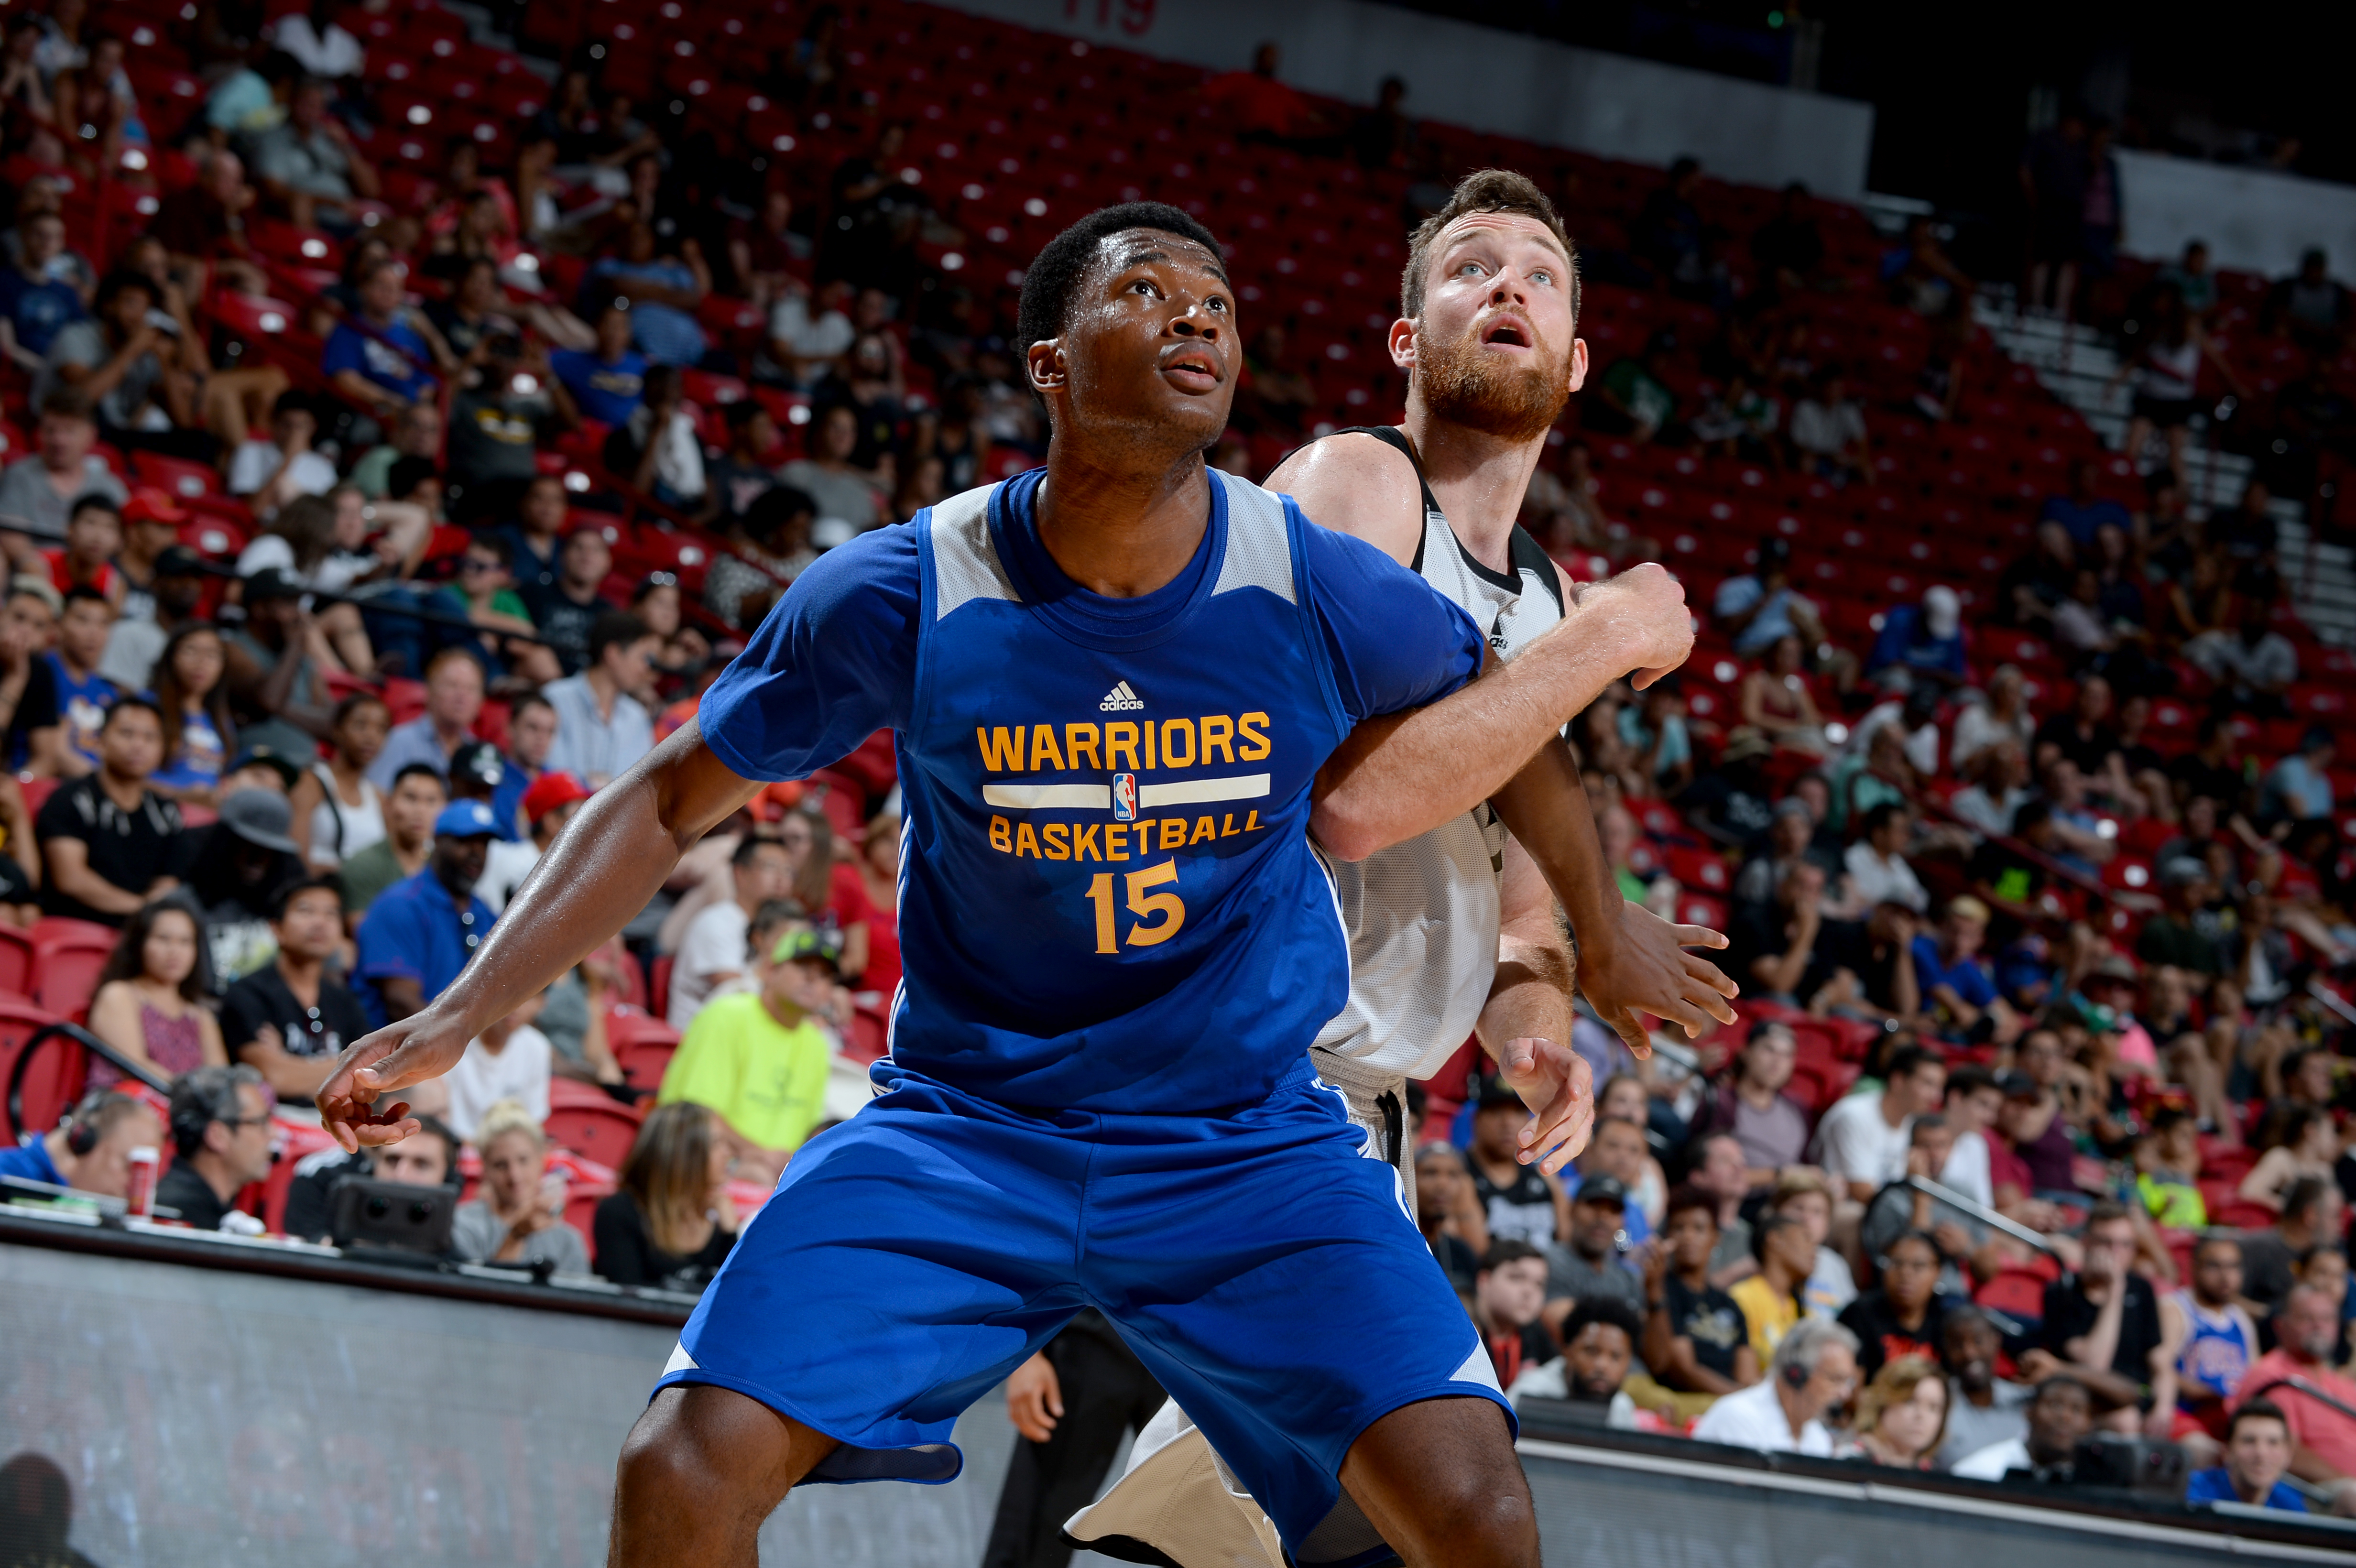 812885340-2017-las-vegas-summer-league-golden-state-warriors-v-minnesota-timberwolves.jpg